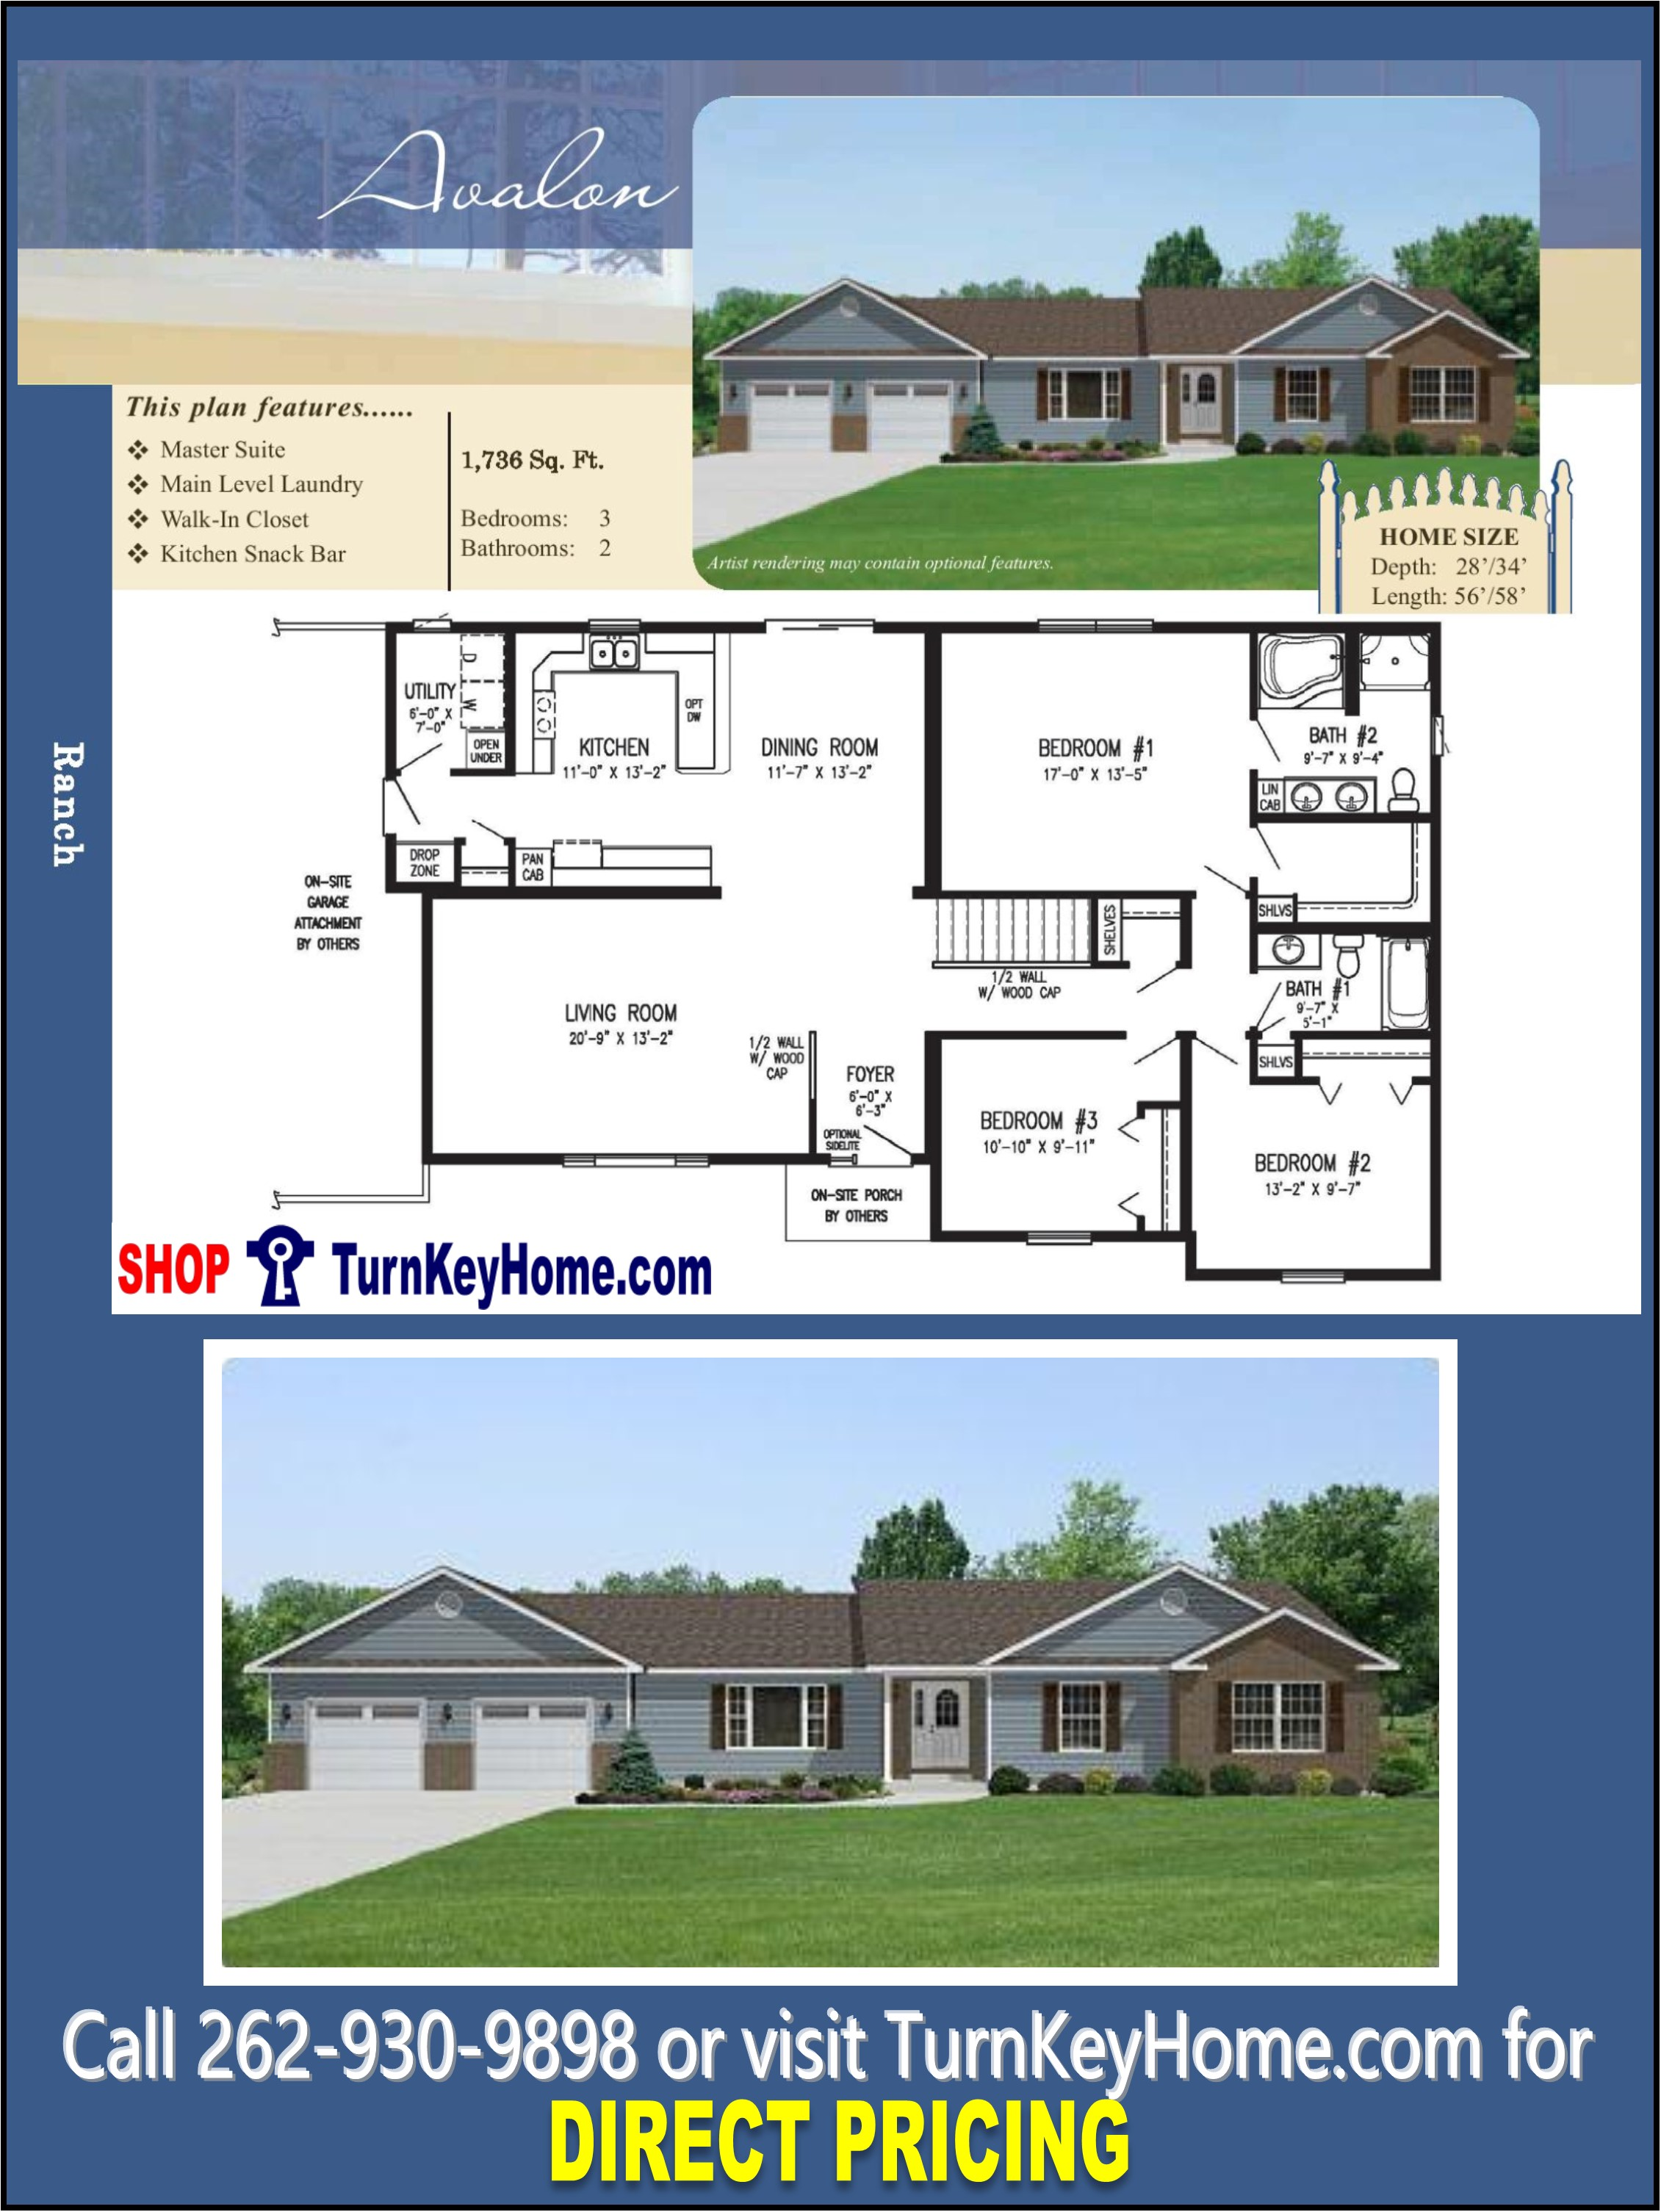 Avalon ranch home 3 bed 2 bath plan 1736 sf priced from for Direct from the designers house plans